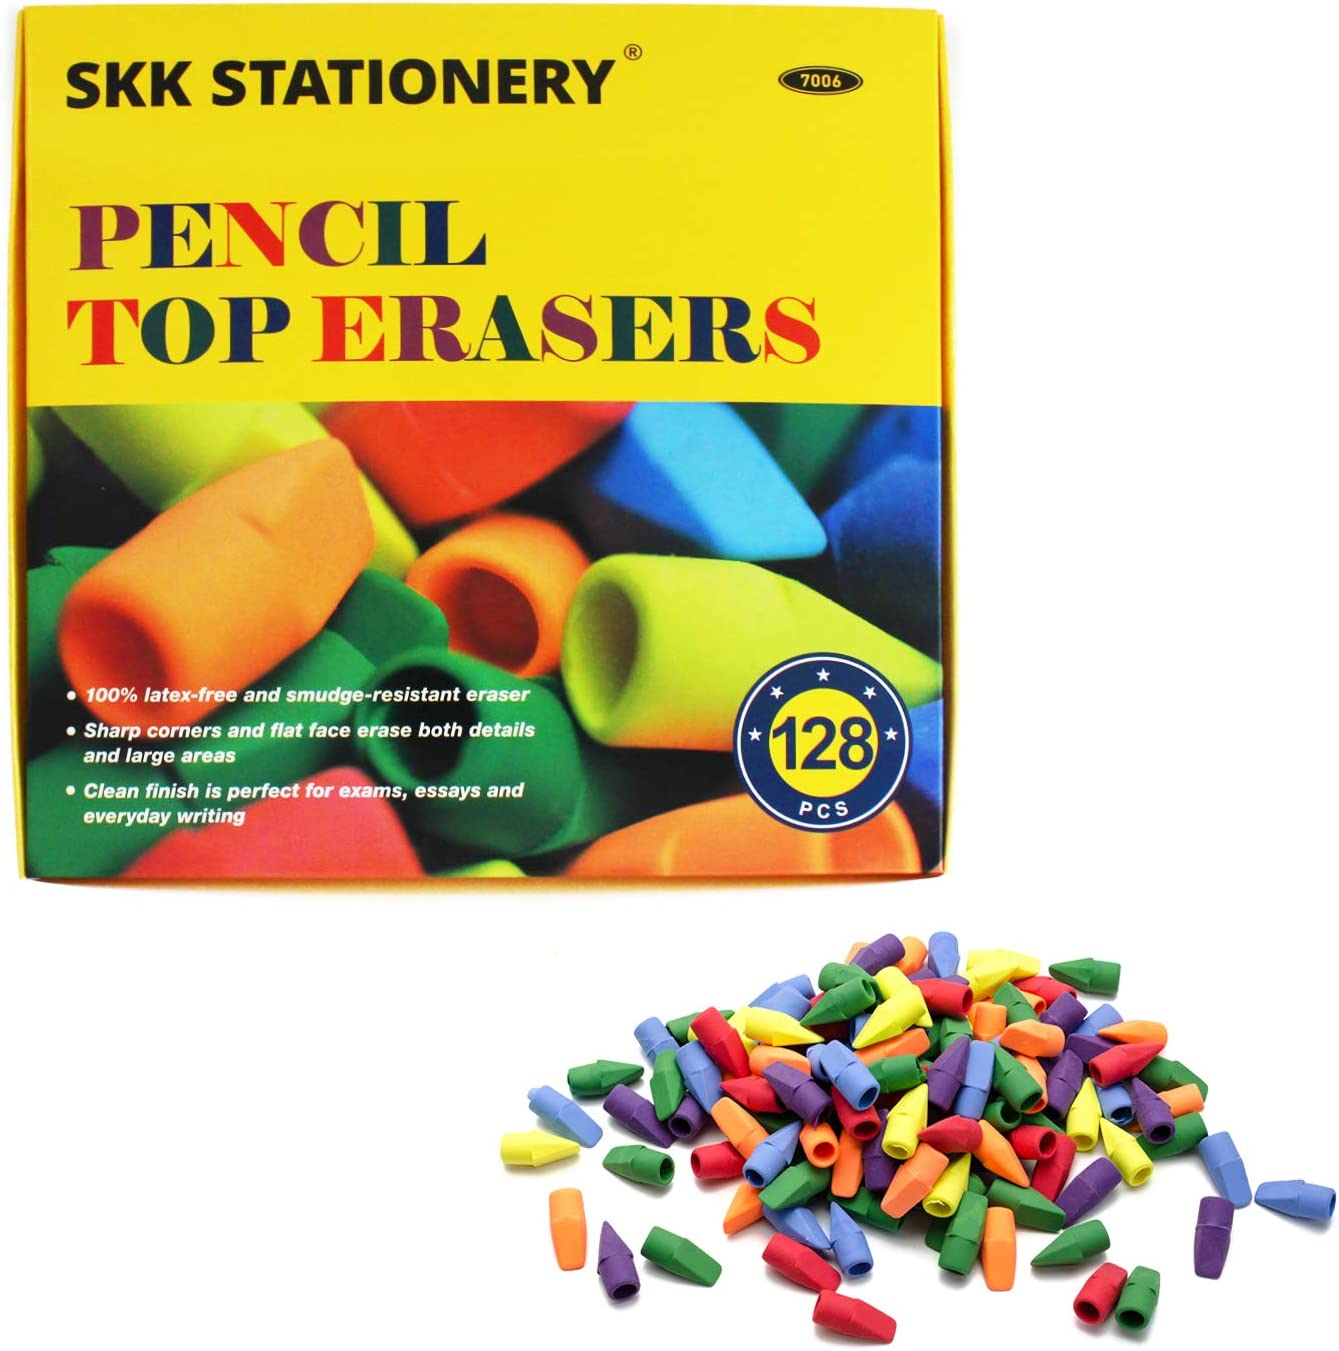 SKKSTATIONERY Erasers Tops Set of Pencil 128 Max 48% OFF Mixed Top Year-end annual account